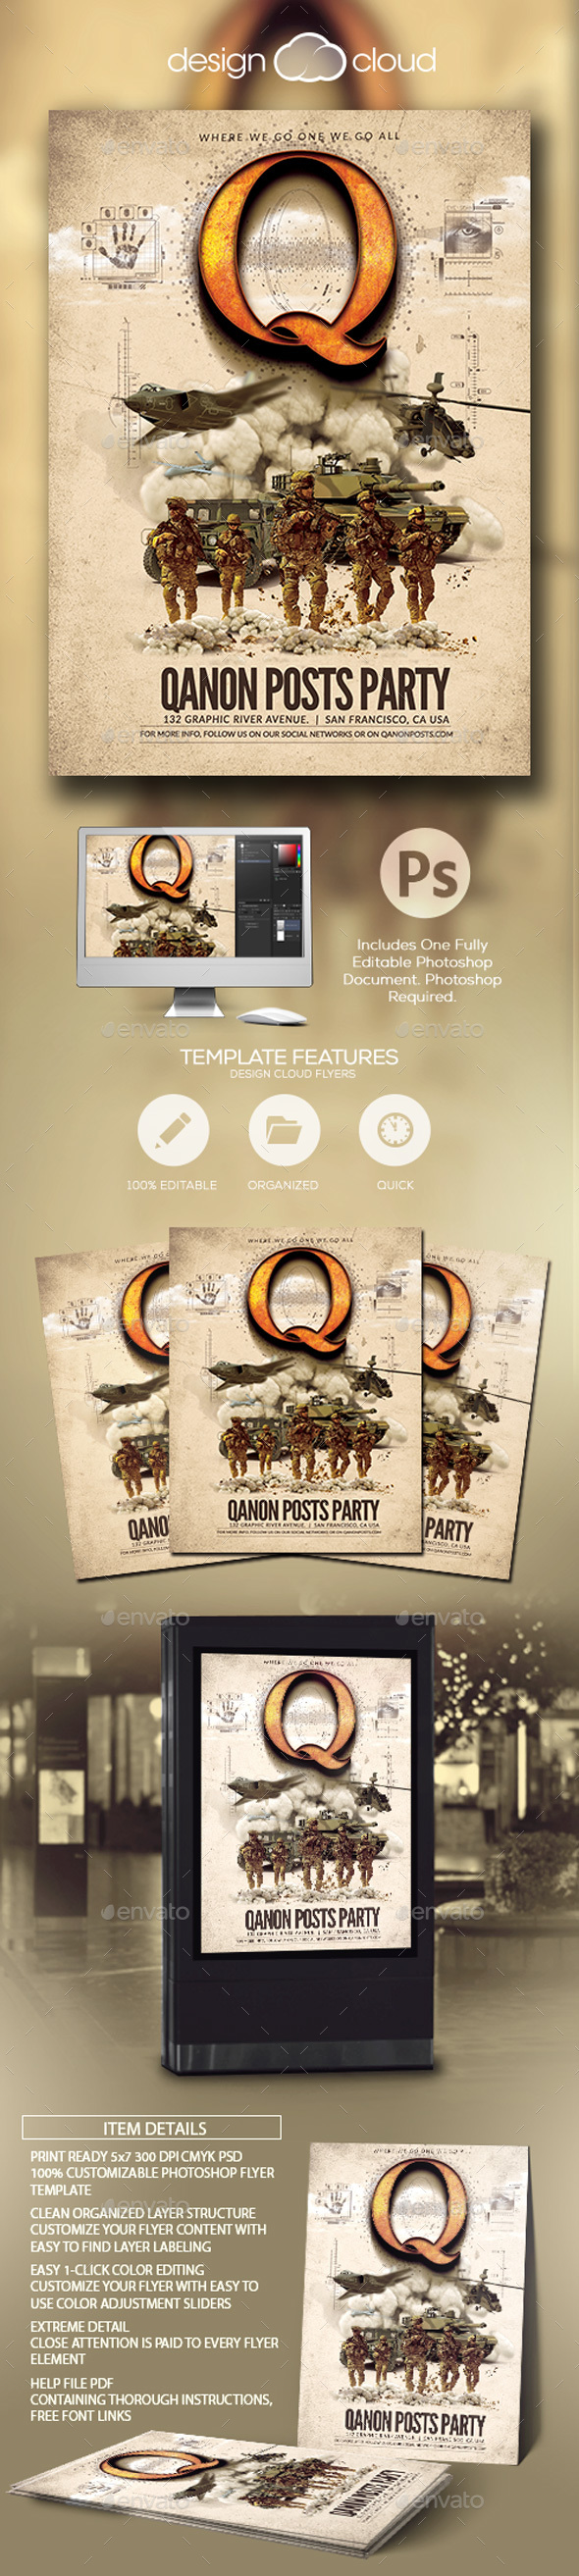 qanon posts military flyer template by design cloud graphicriver